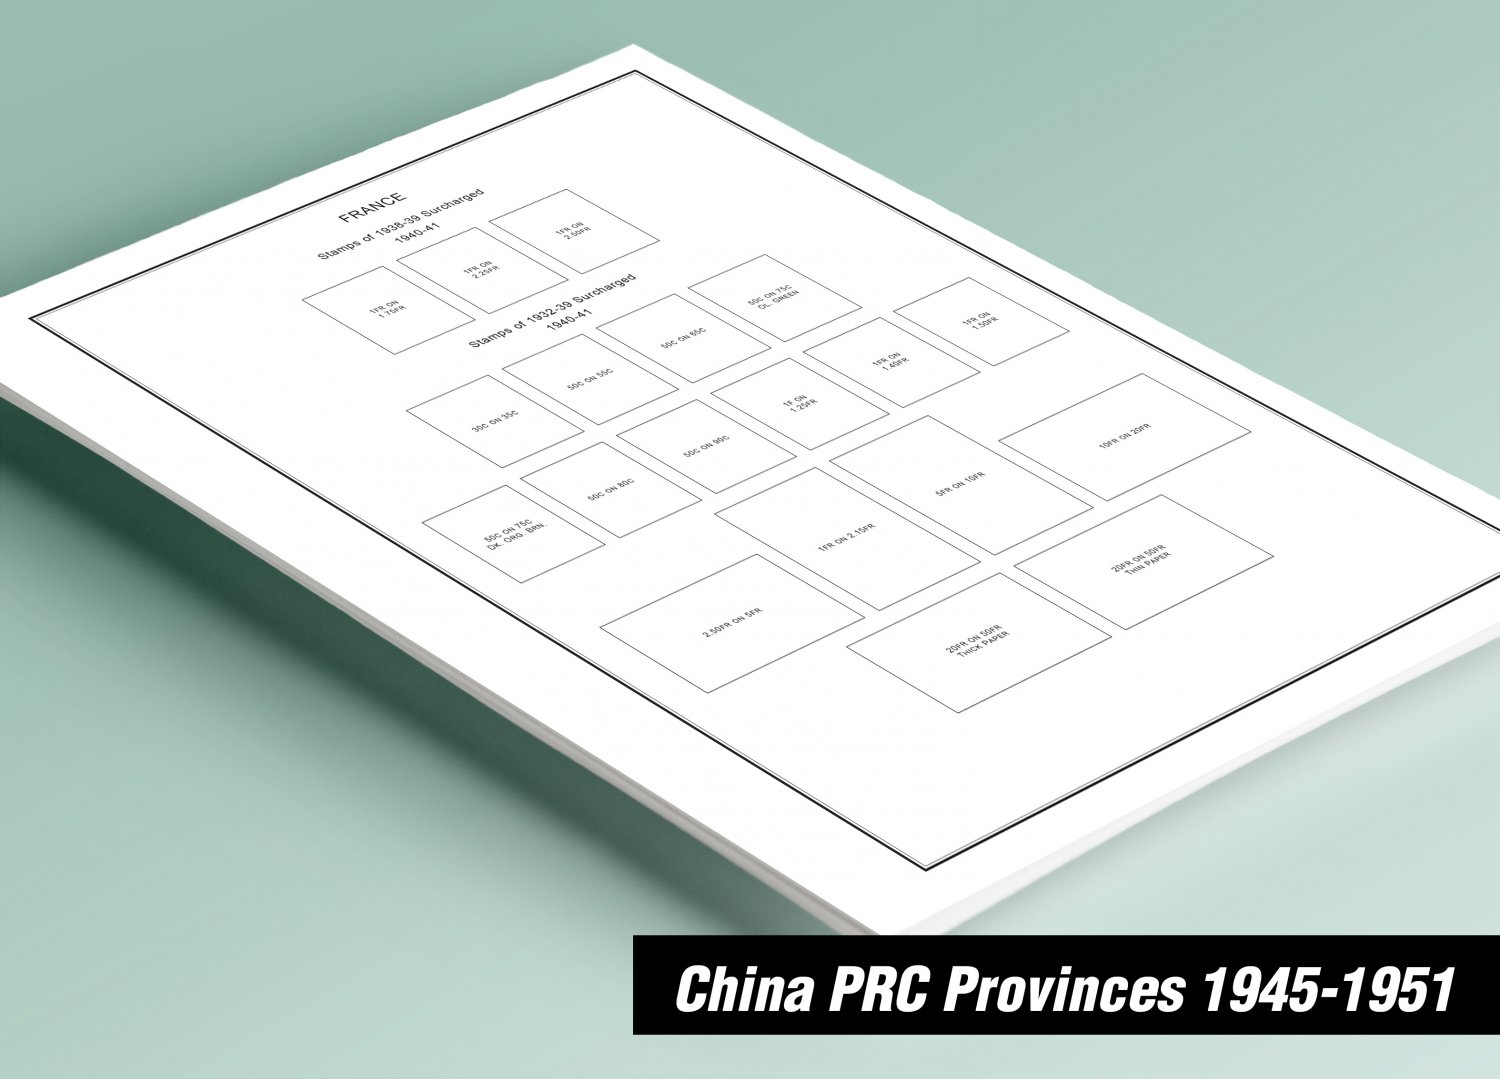 PRINTED CHINA P.R.C. PROVINCES 1945-1951 STAMP ALBUM PAGES (61 pages)